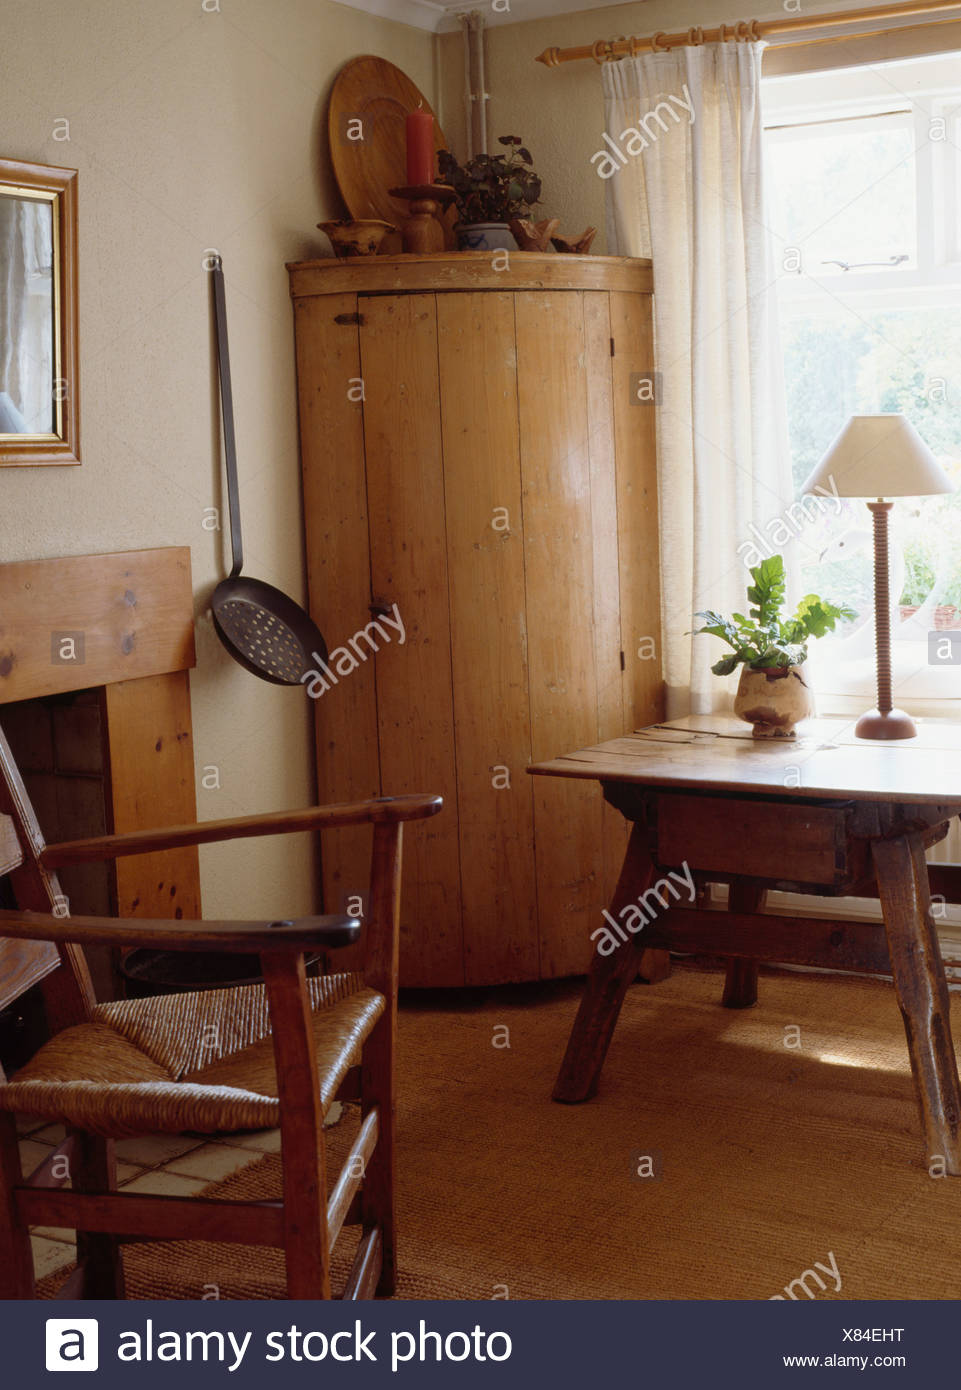 Curved antique pine corner cupboard in Shaker style dining room with rush  seated chair and small antique table - Curved Antique Pine Corner Cupboard In Shaker Style Dining Room With